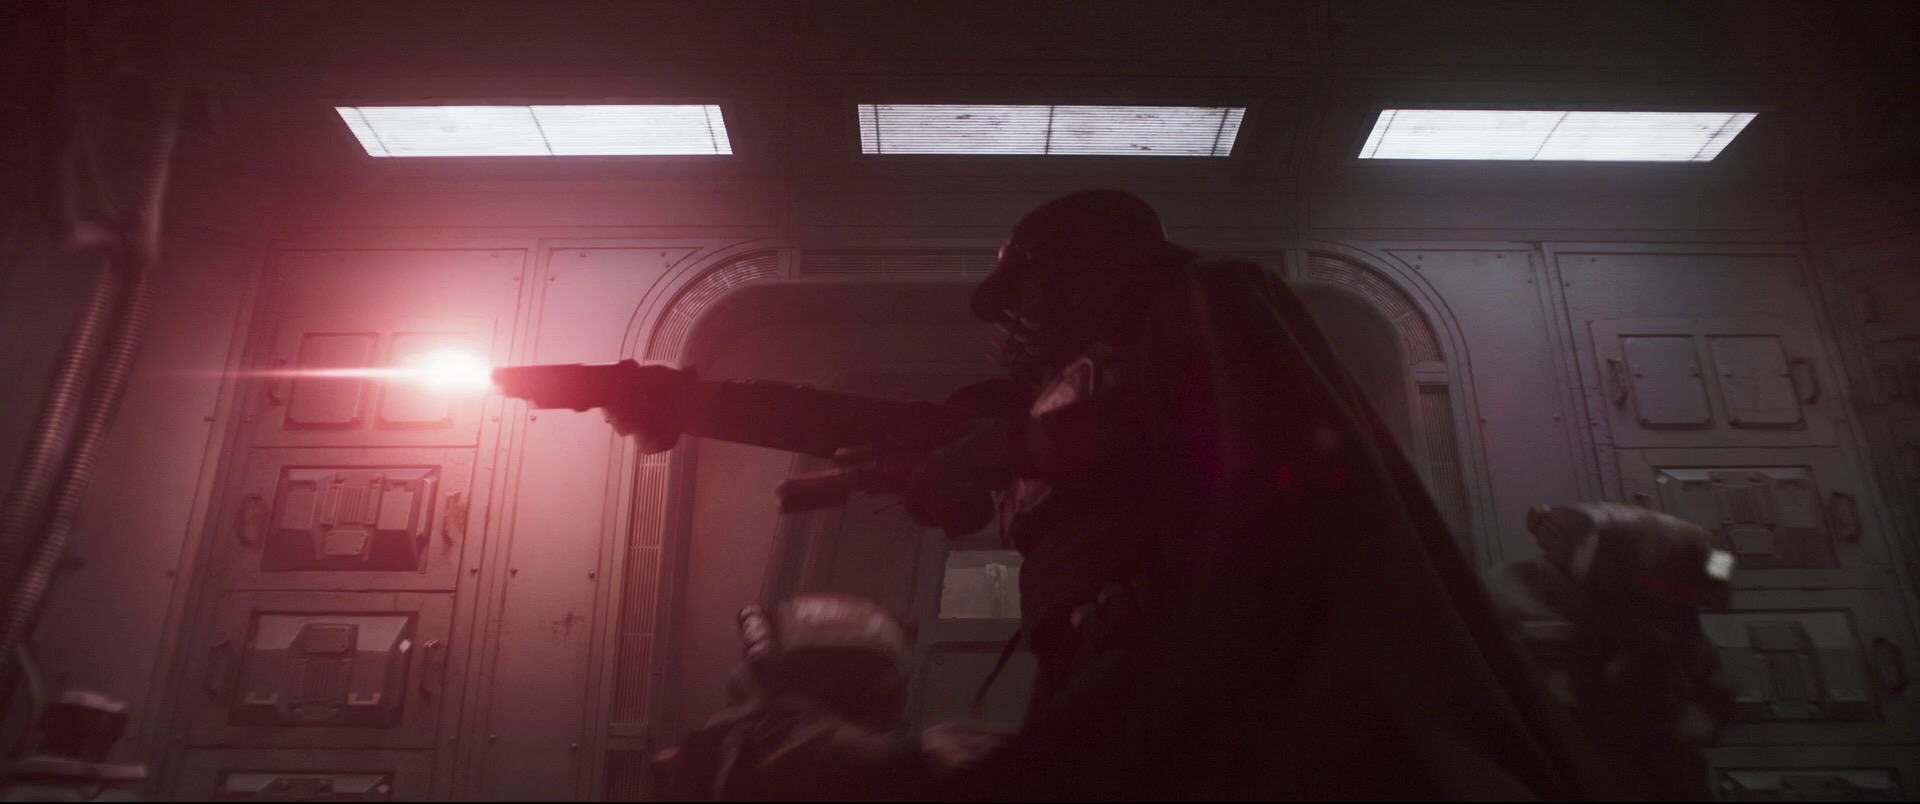 Solo-A-Star-Wars-Story-Trailer-Analysis-Blaster-Attack-Future-of-the-Force